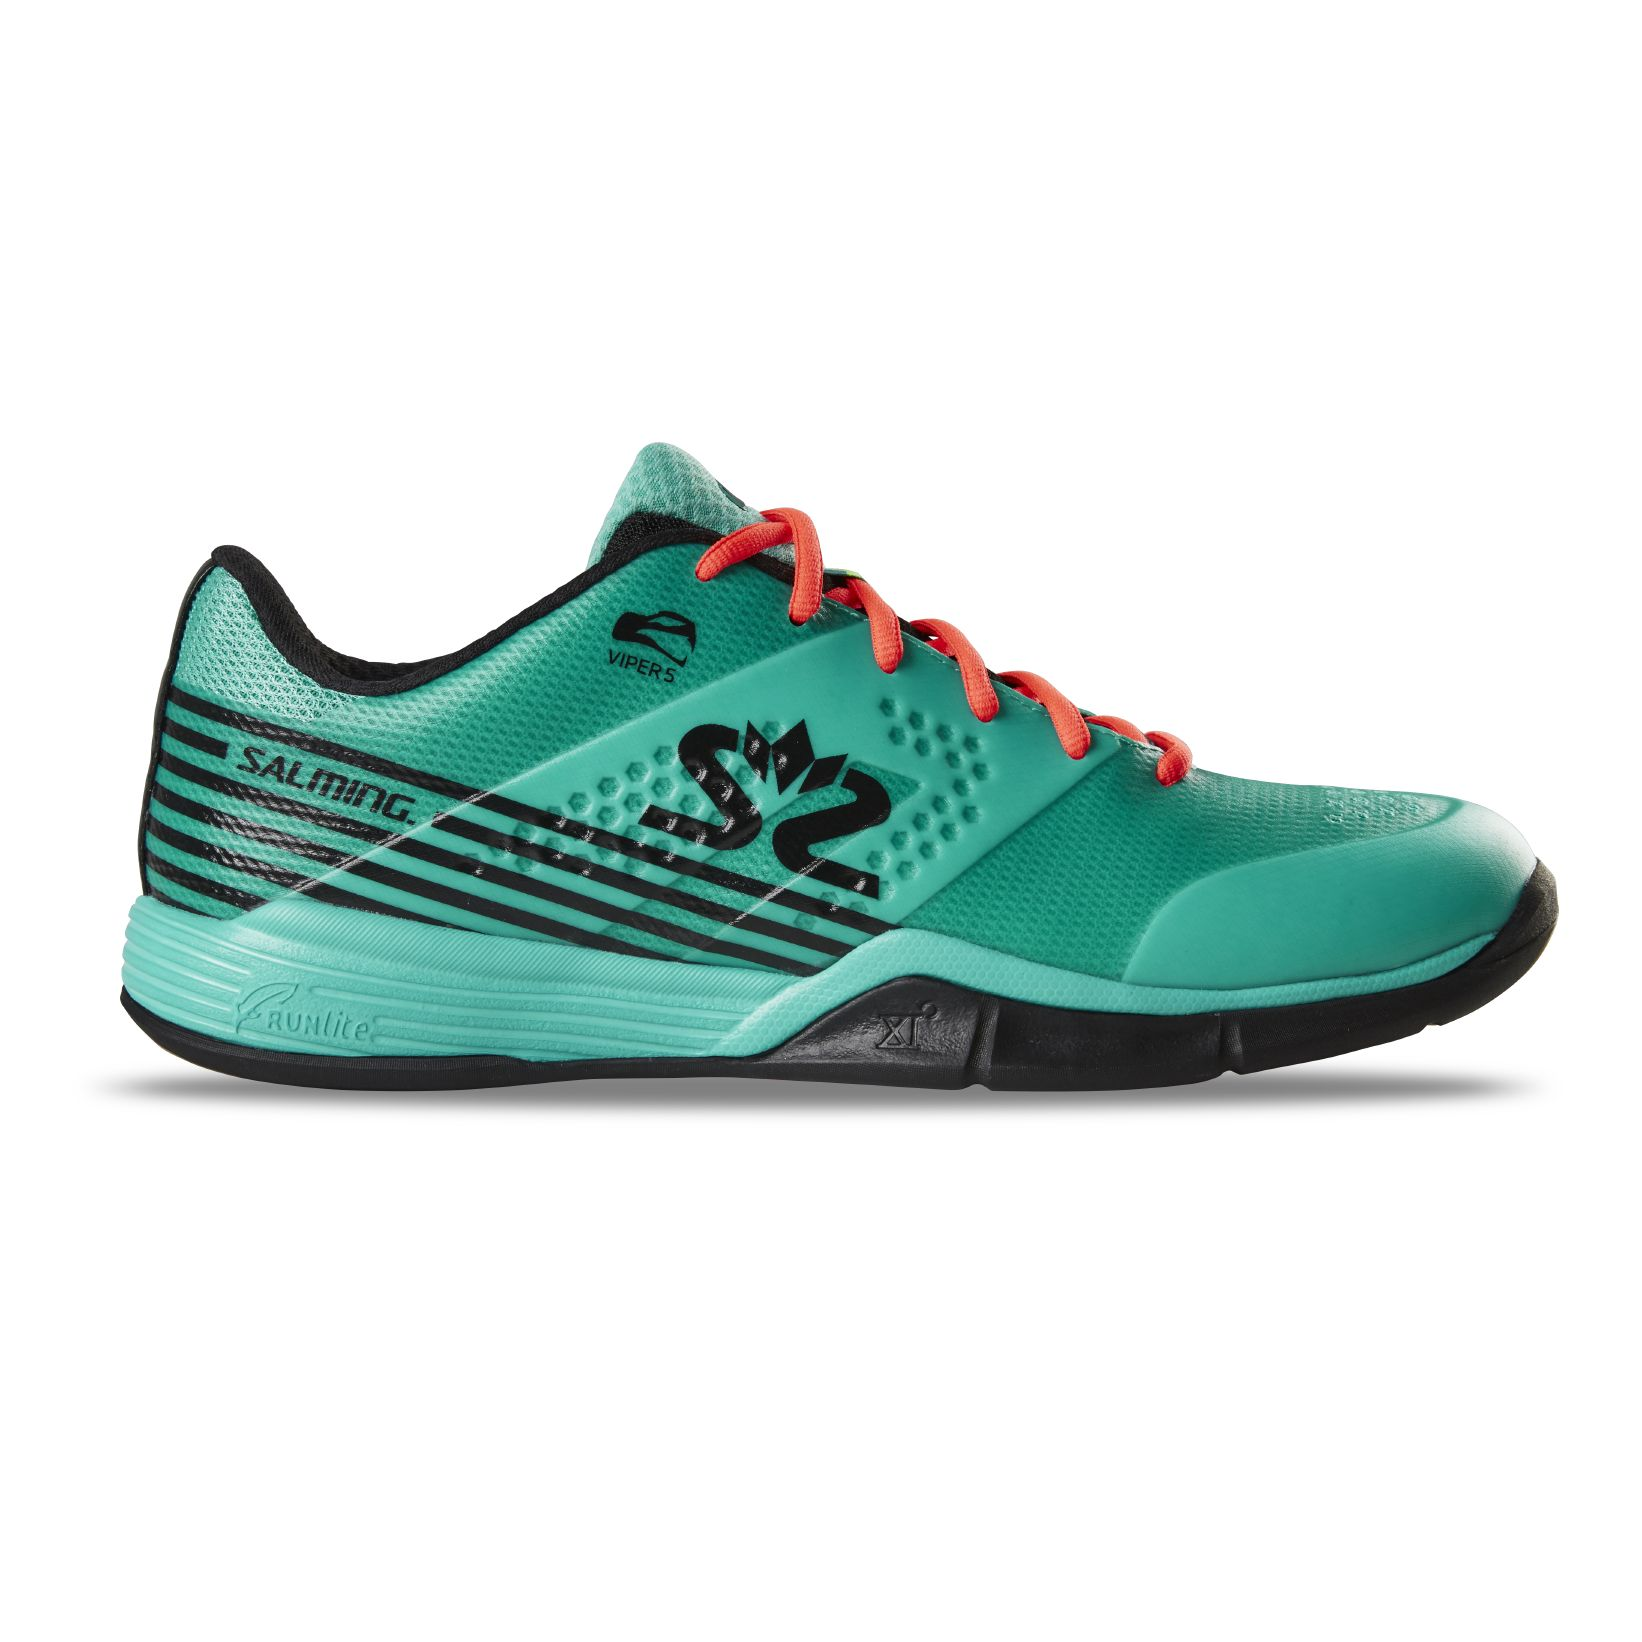 Salming Viper 5 Shoe Men Turquoise/Black 9,5 UK - 44 2/3 EUR - 28,5 cm